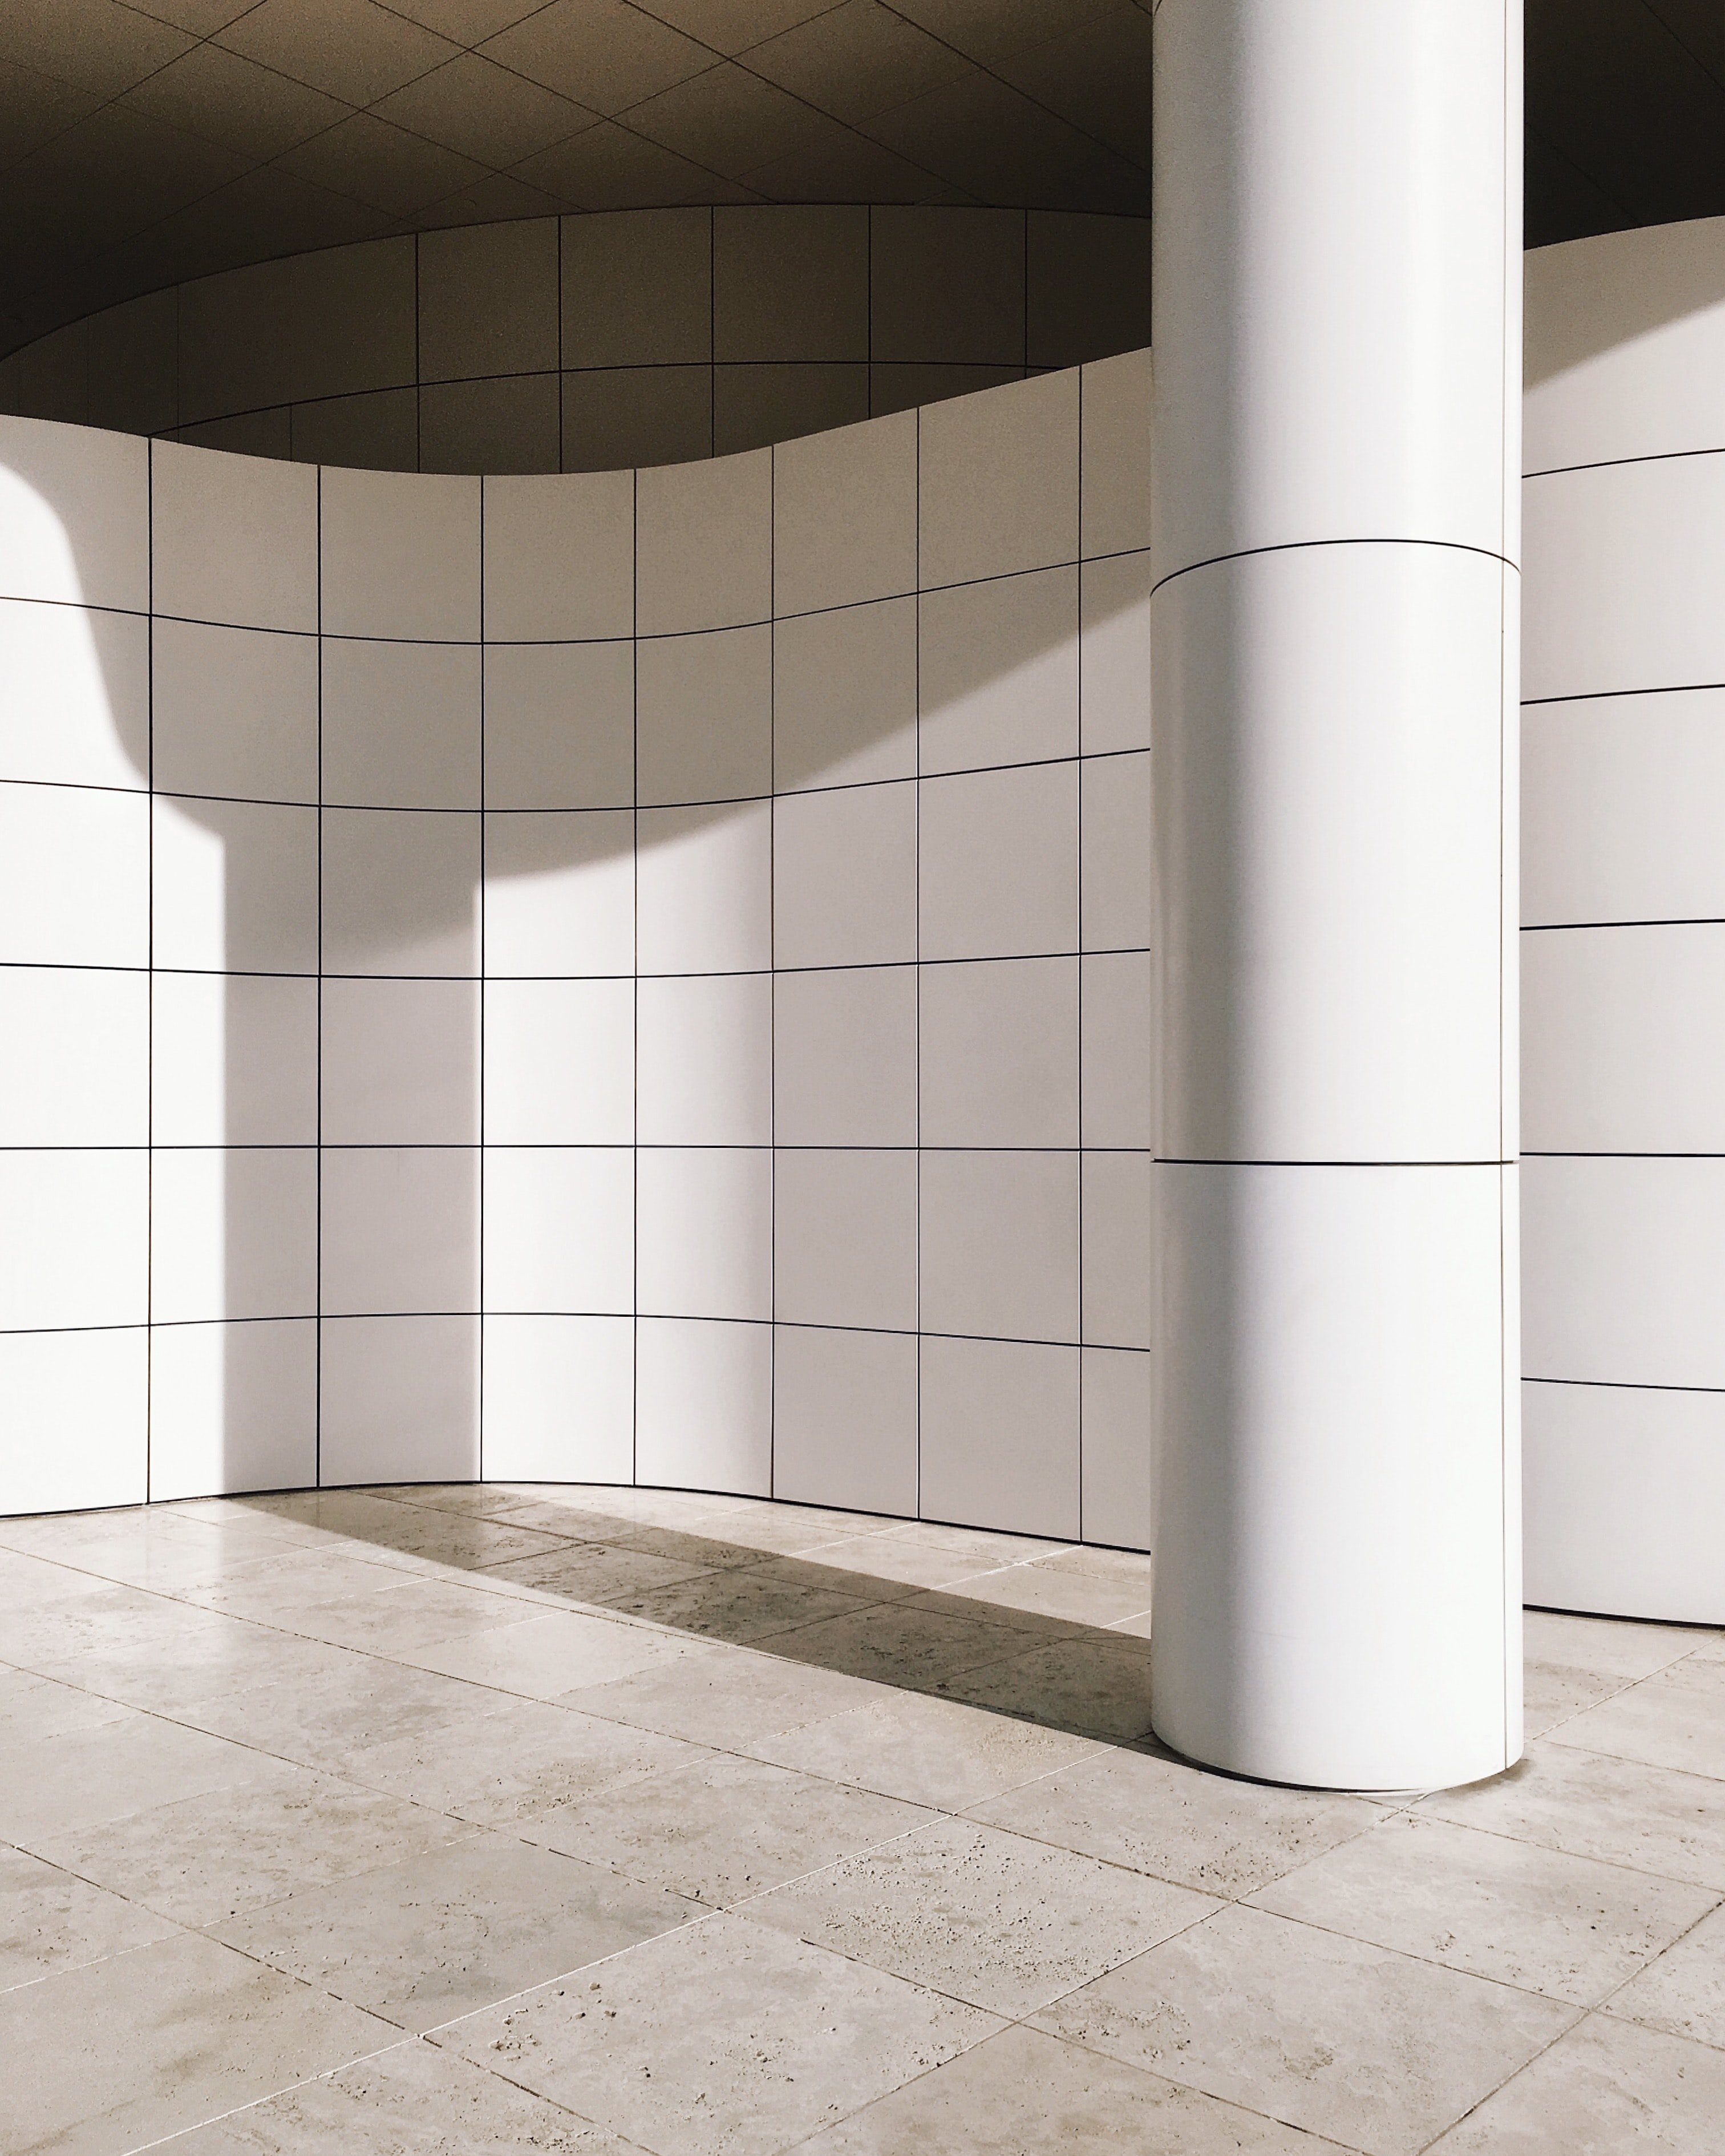 A tiled column casts a shadow onto wall of The Getty museum